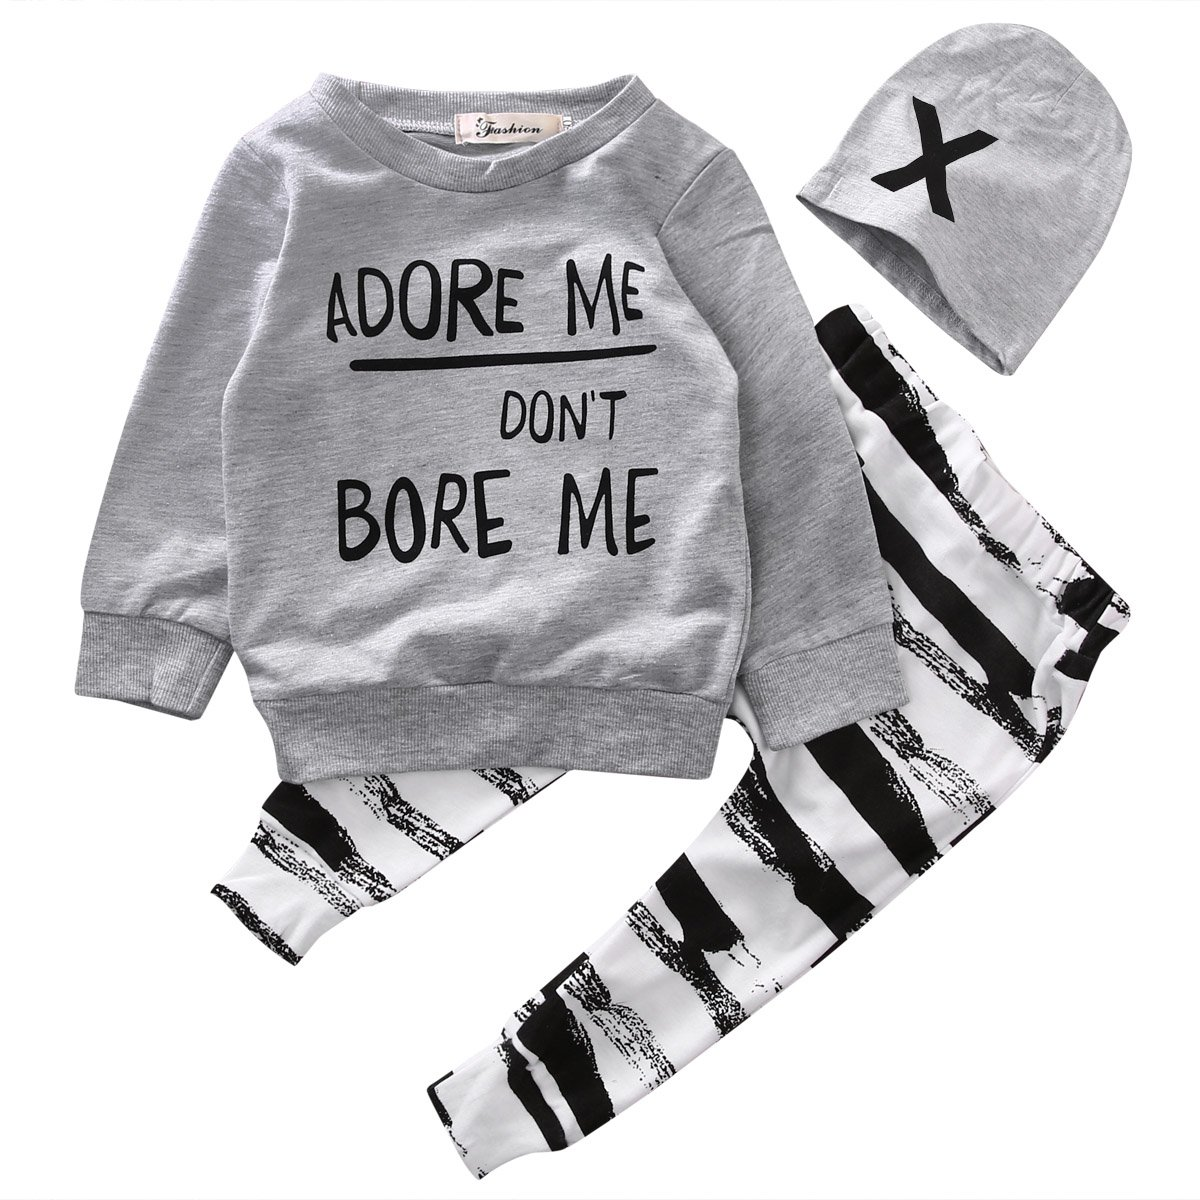 honeys Baby Boy Girl 3pcs Set Outfit Word Print Hoodies Top+Retro Striped Pants+Hat